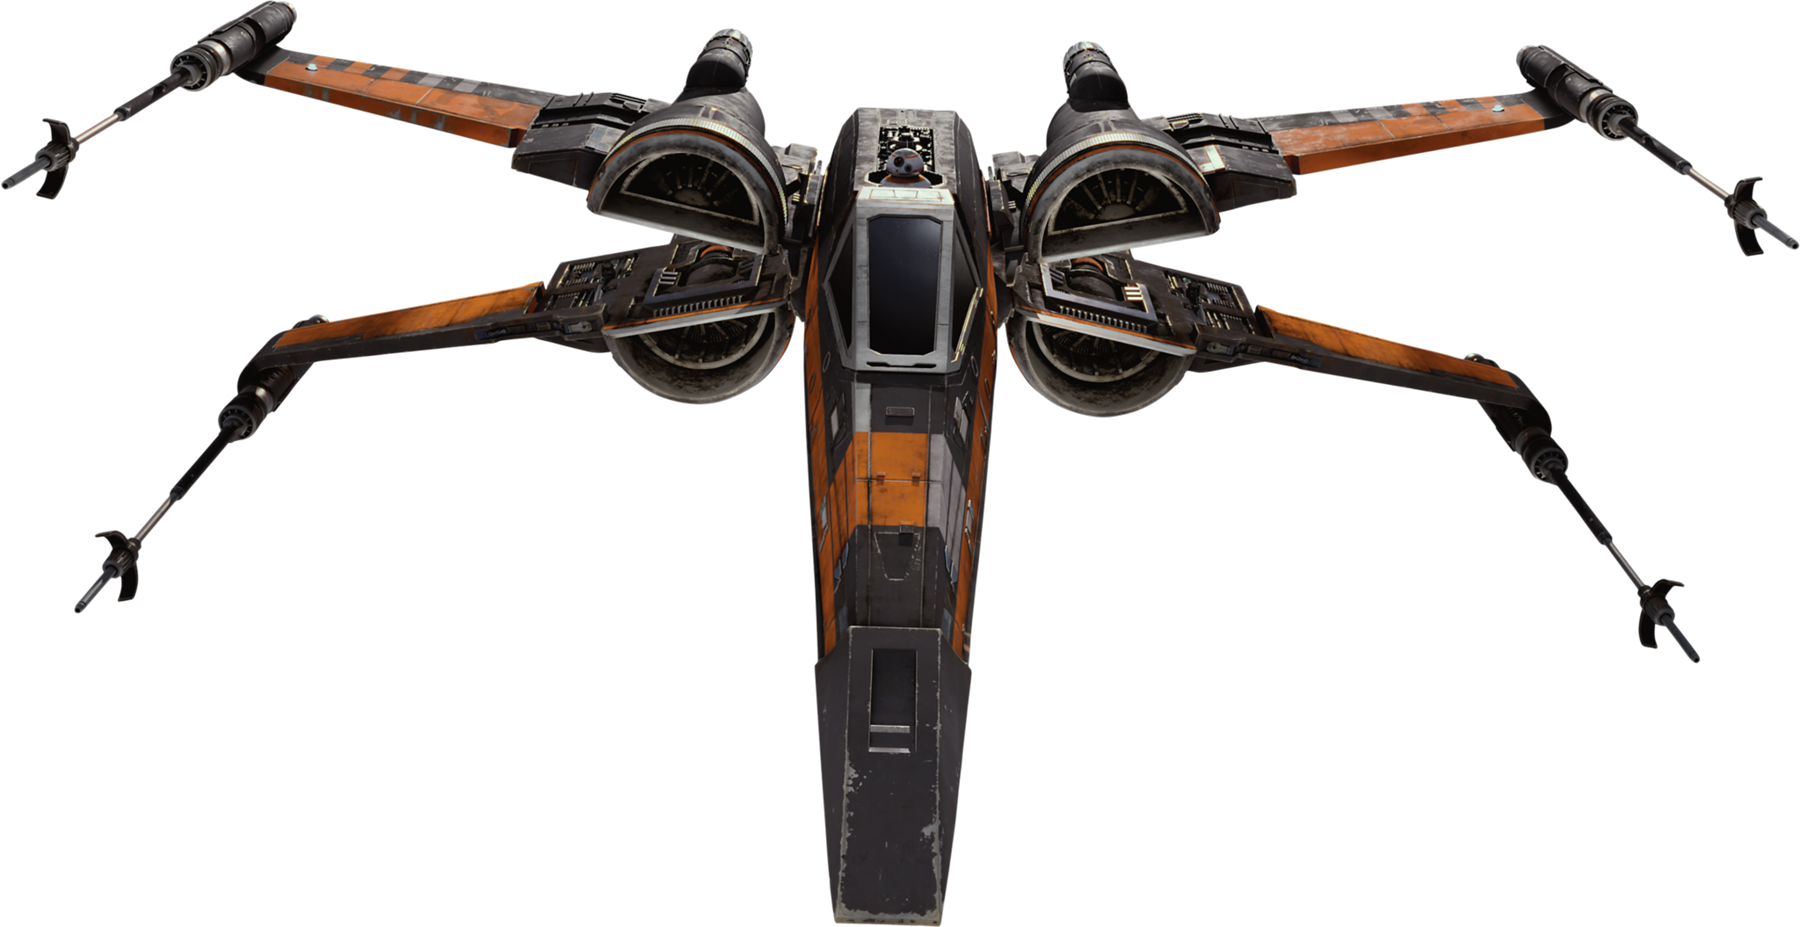 Star wars tie fighter clipart vector free library Starfighter customization. — STAR WARS™ BATTLEFRONT™ vector free library